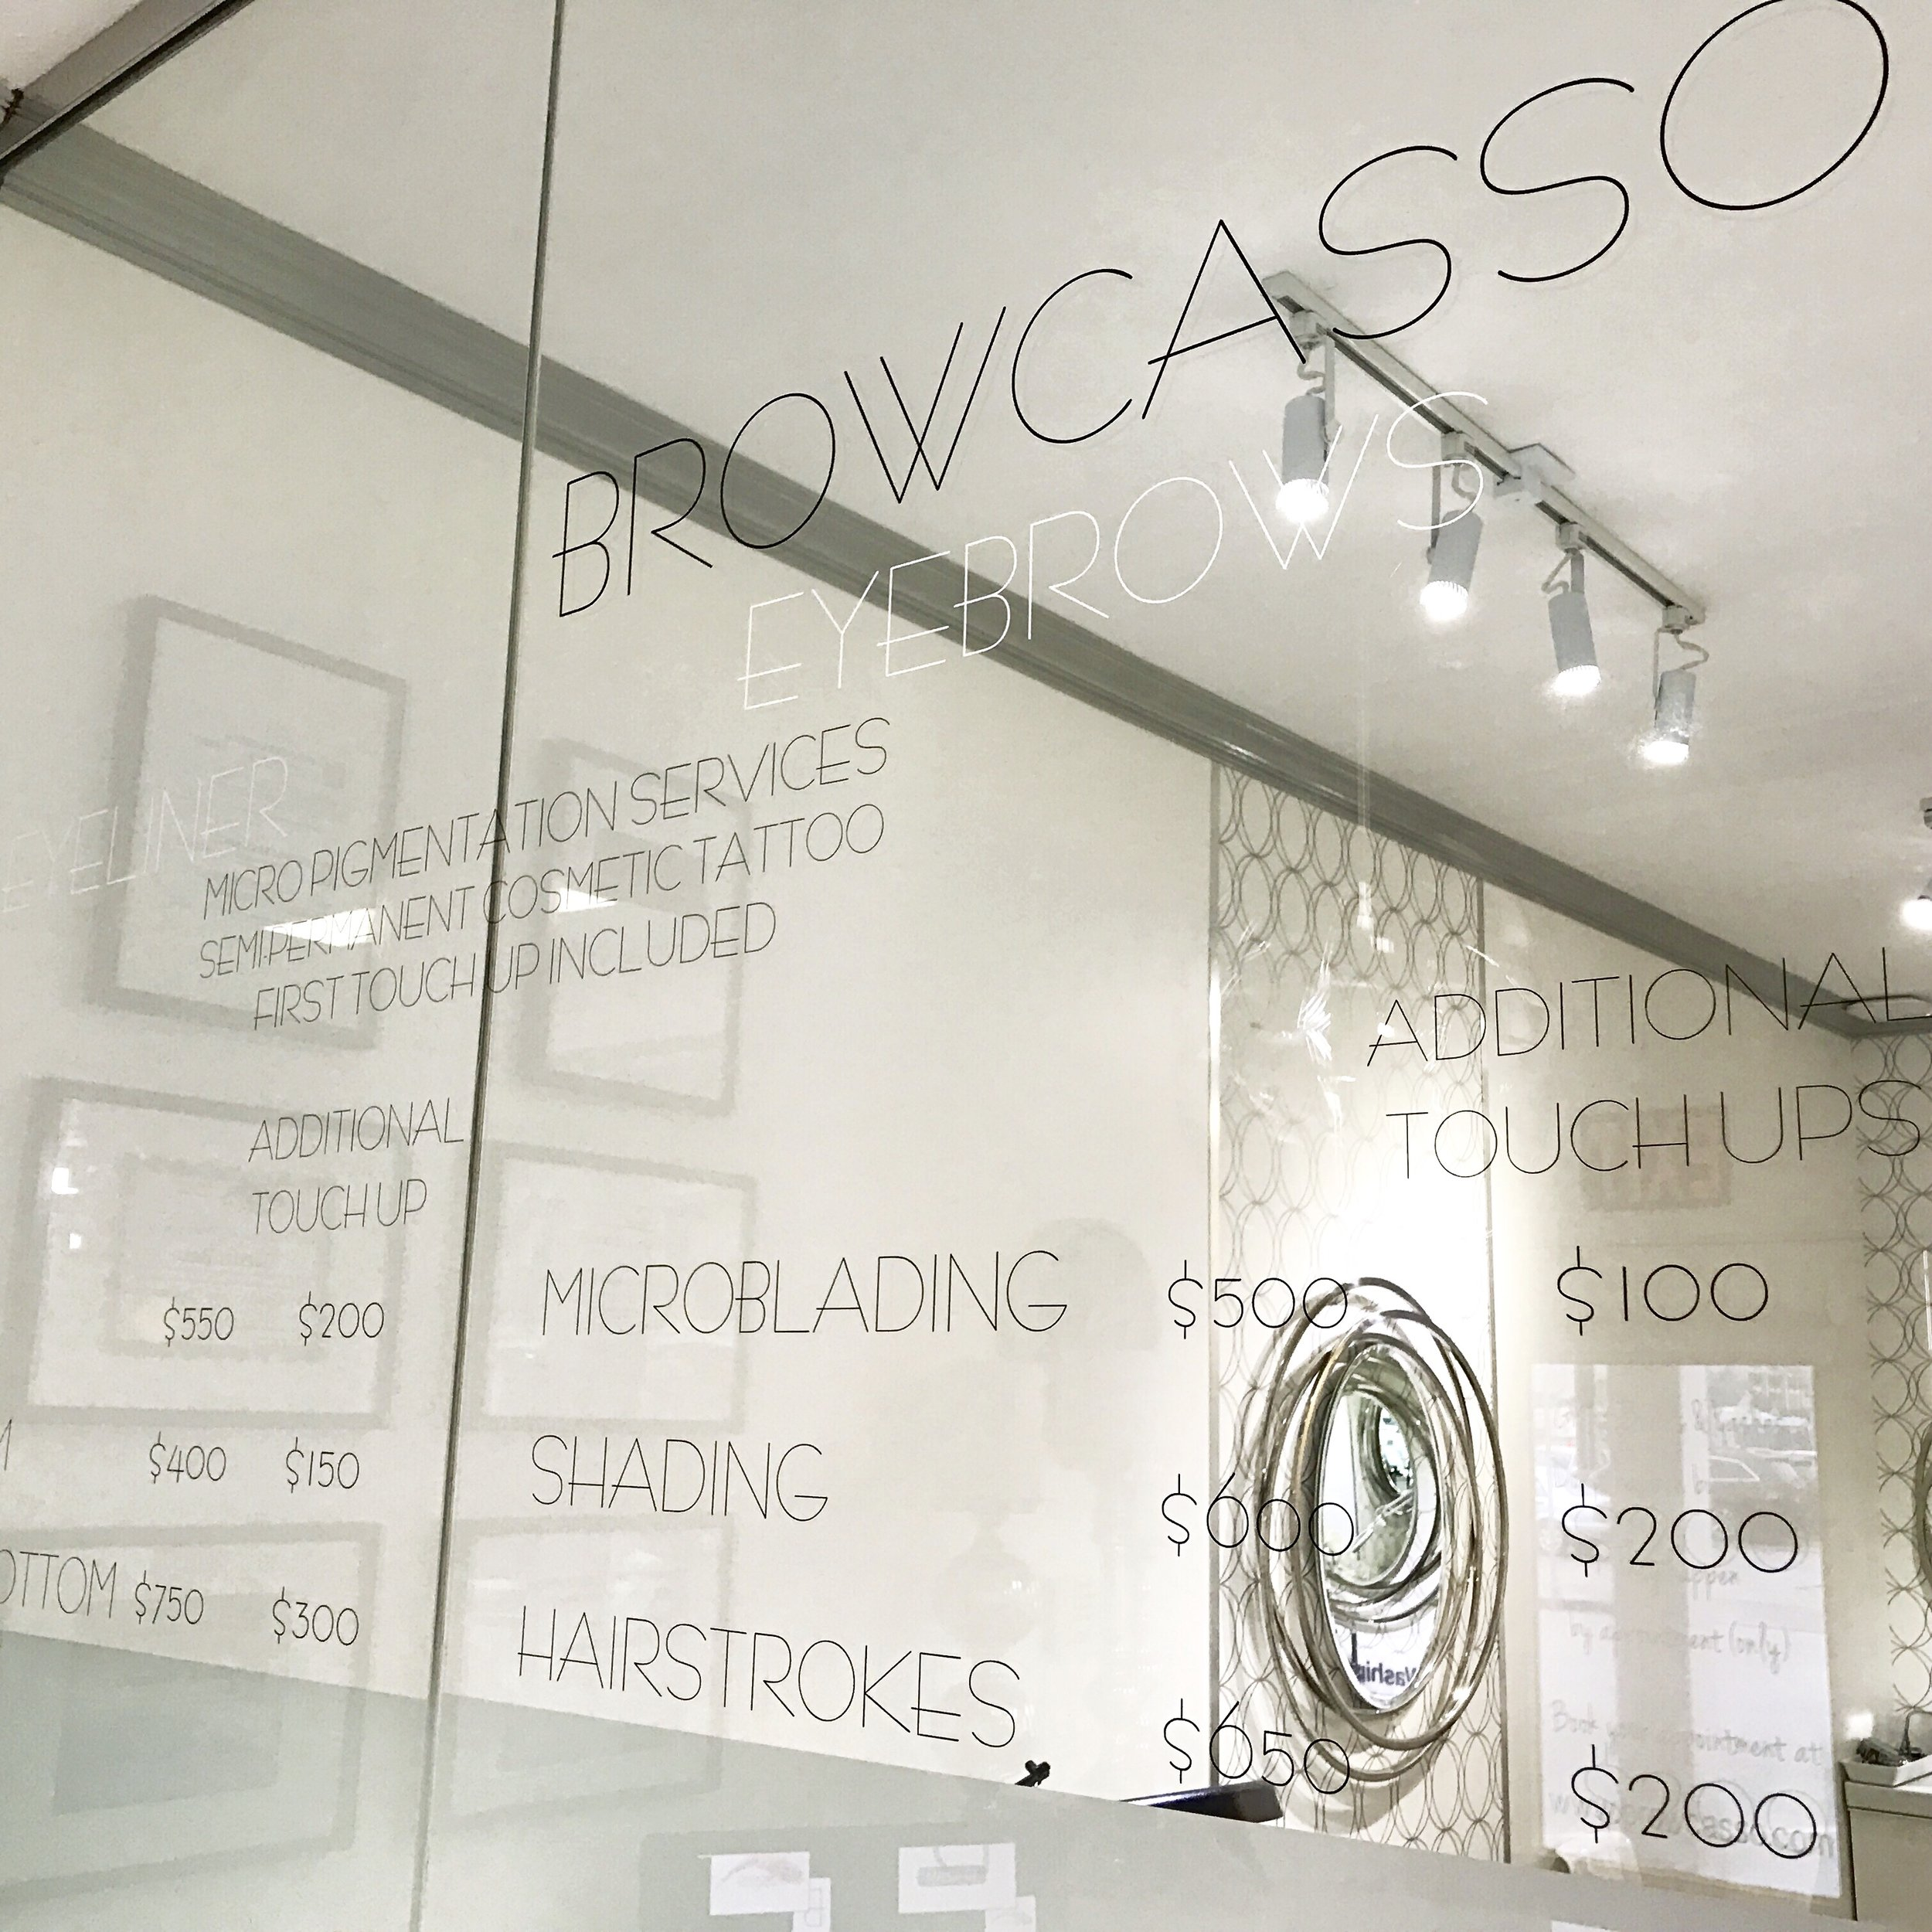 """""""We are more than happy with our new glass wall signage & installation. We can't thank you enough for your meticulous work, attention to detail, and your bubbly, friendly positive energy! You brought our vision to life once again with this project. And we love it as much as we love the door project you complete for us last year. We will definitely be calling on you for all of our future projects! Thanks x a million """" - Paula M., BROWCASSO Salon"""